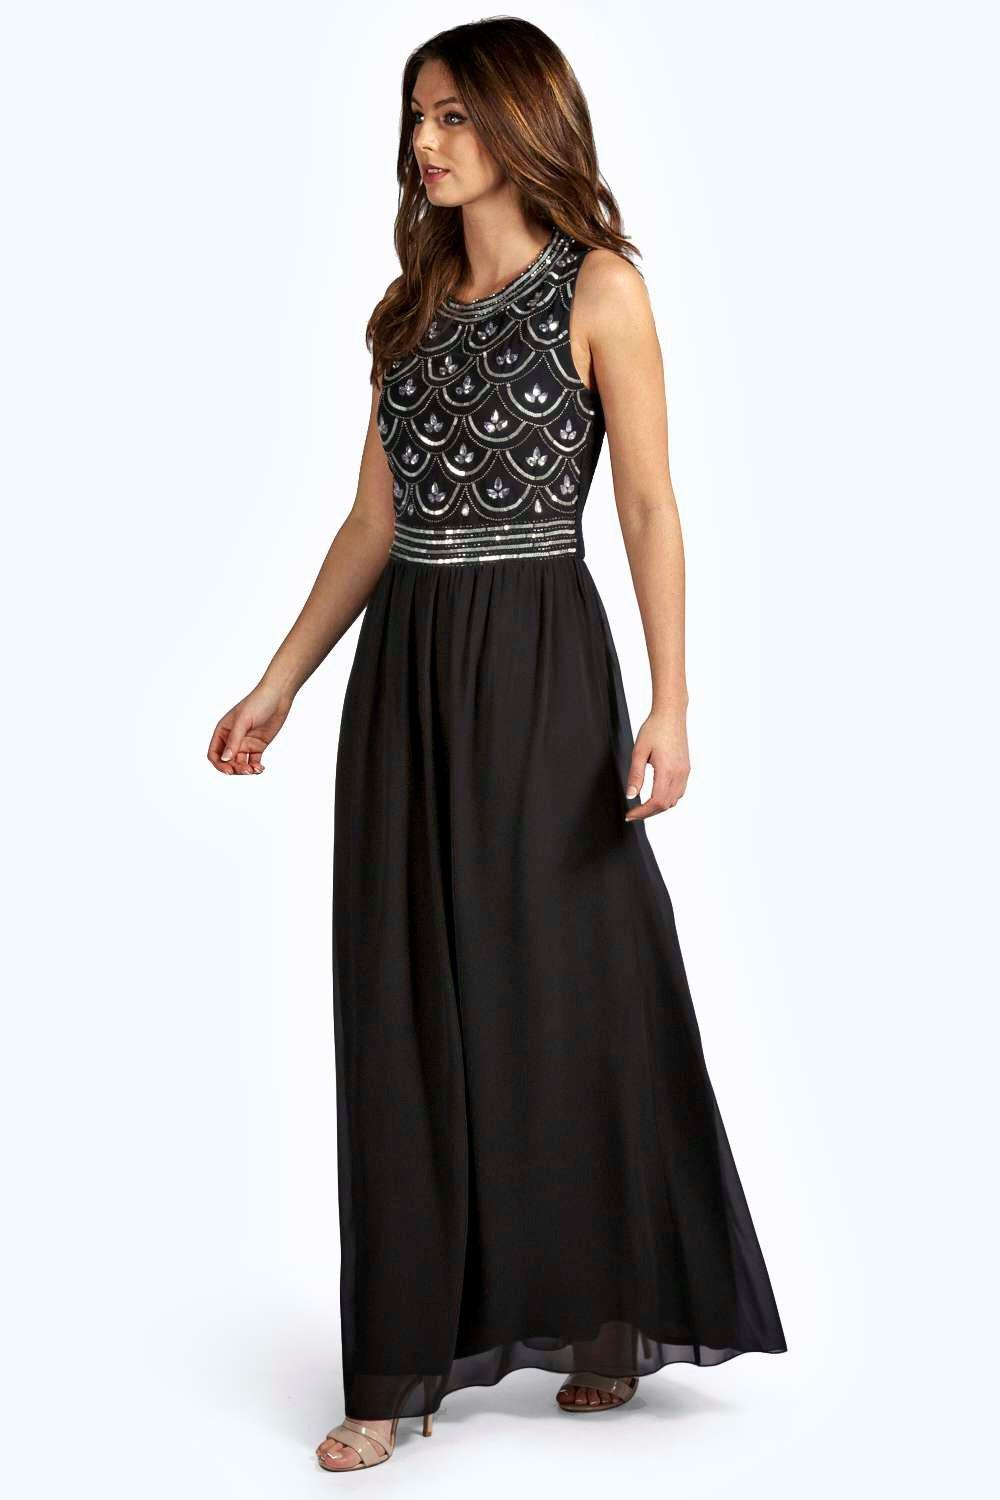 Boutique Crina Embellished Top Chiffon Maxi Dress | Boohoo